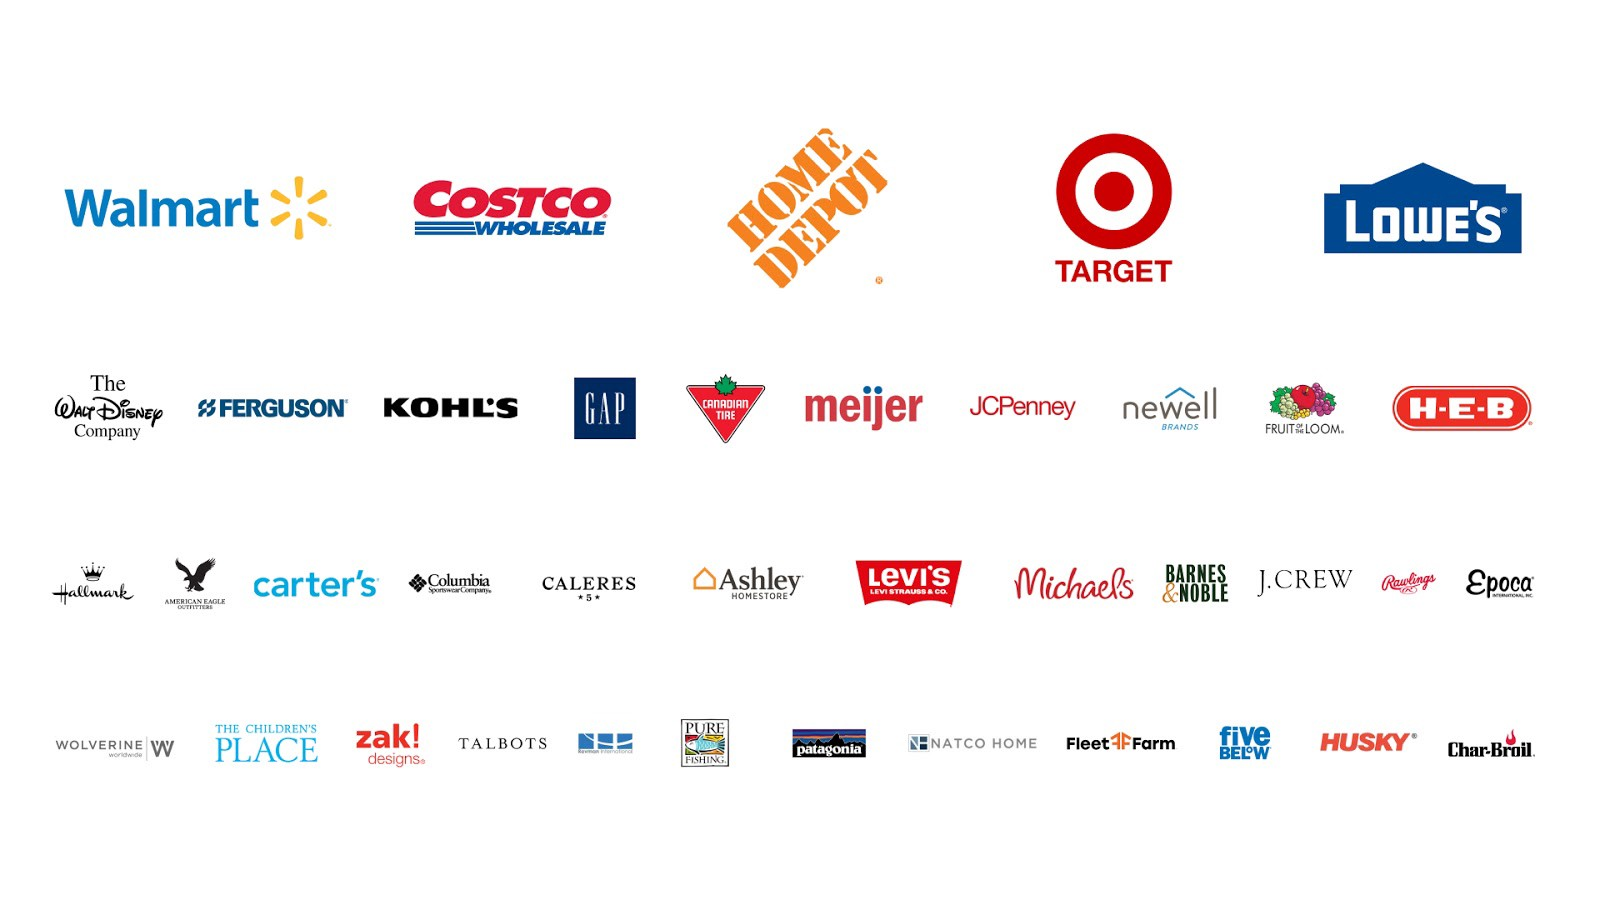 A list of SCAN members, including Walmart, Costco, Home Depot, Target, Lowe and others